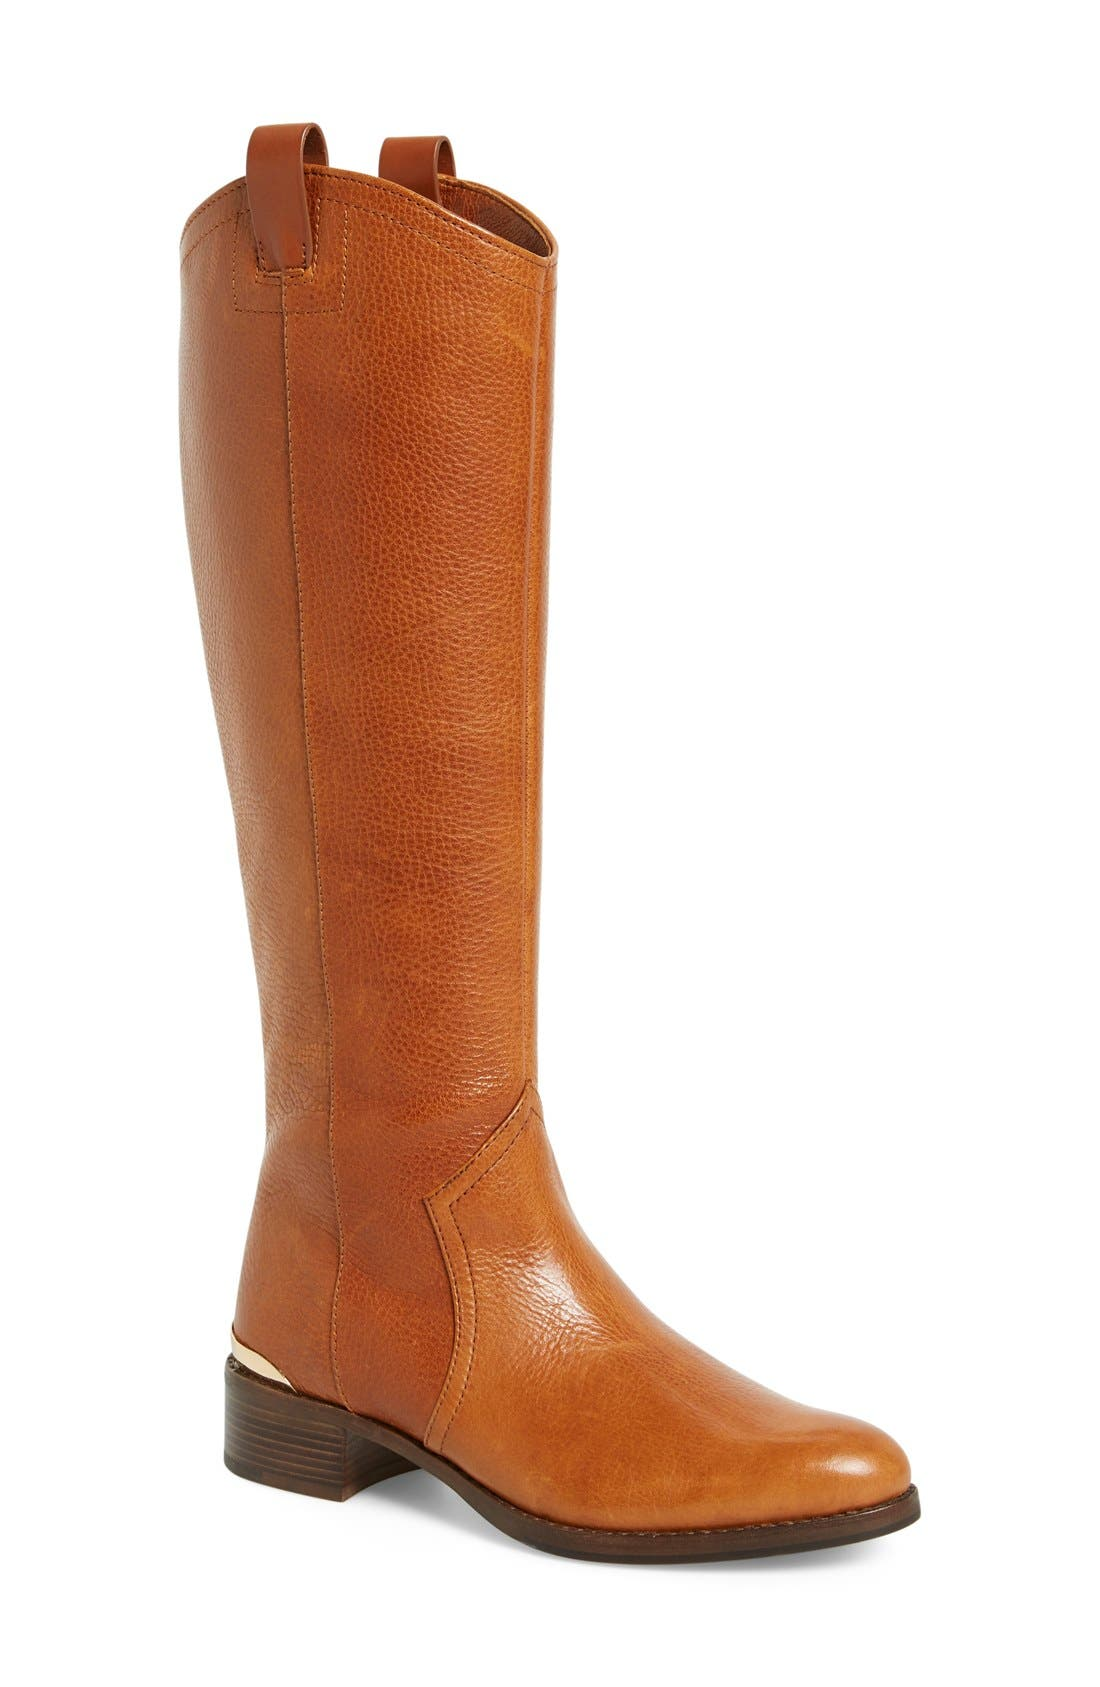 Alternate Image 1 Selected - Louise et Cie 'Zada' Knee High Leather Riding Boot (Women) (Wide Calf) (Nordstrom Exclusive)